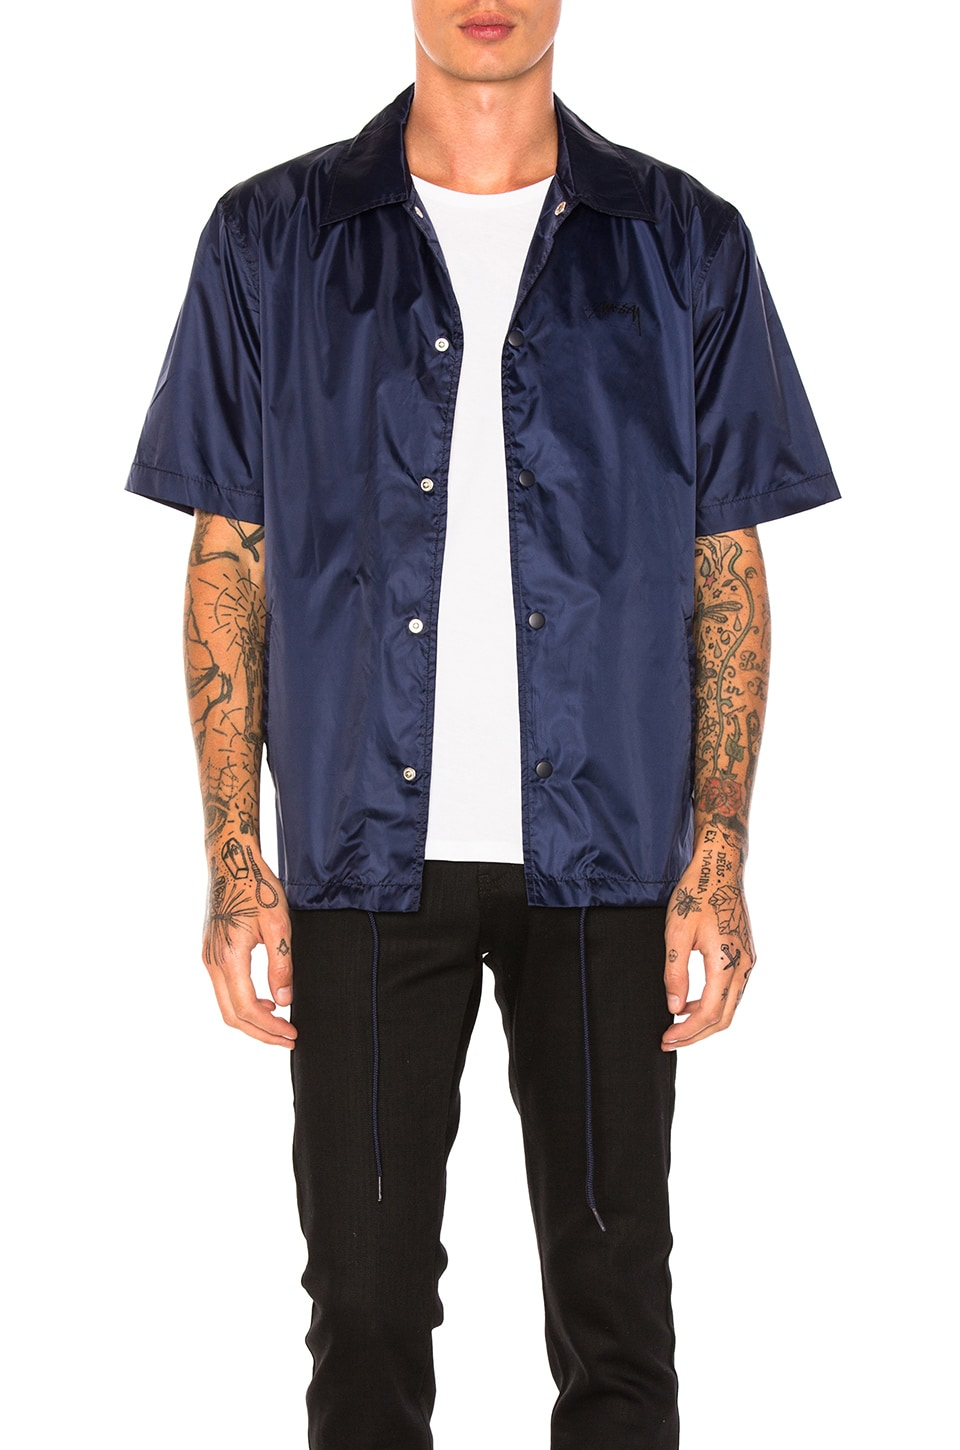 S/SL Coach Jacket by Stussy